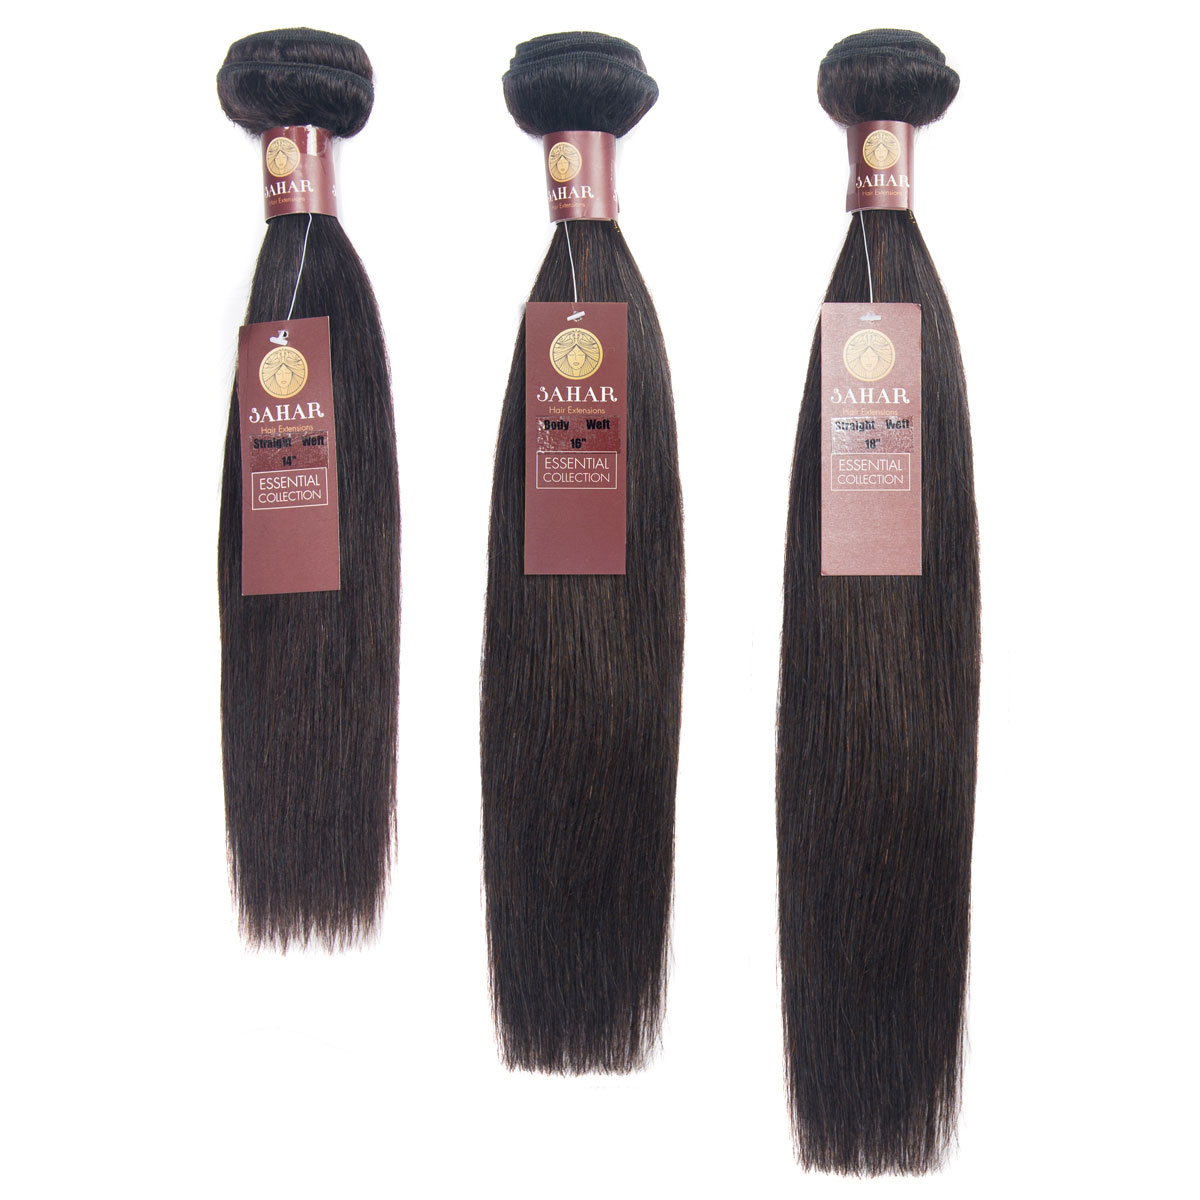 "Sahar Essential Virgin Remy Human Hair Extensions Bundle (8A) - #Natural Black Straight 12""+14""+16"" No Closure Part"